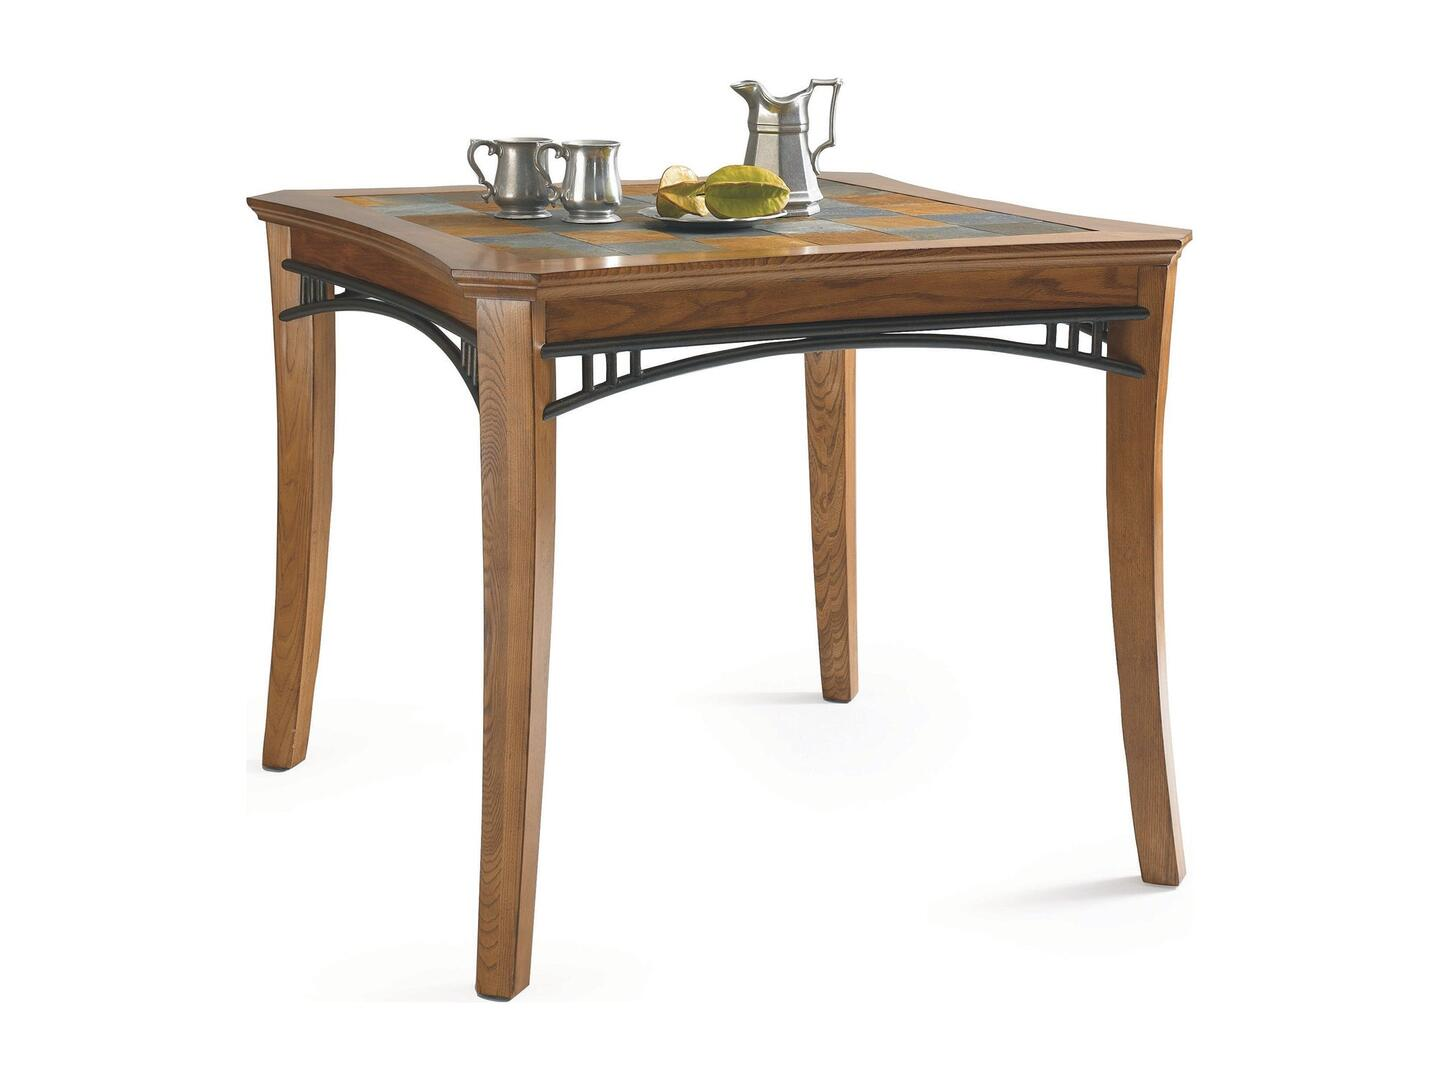 Super Lane Furniture 86674 Gmtry Best Dining Table And Chair Ideas Images Gmtryco